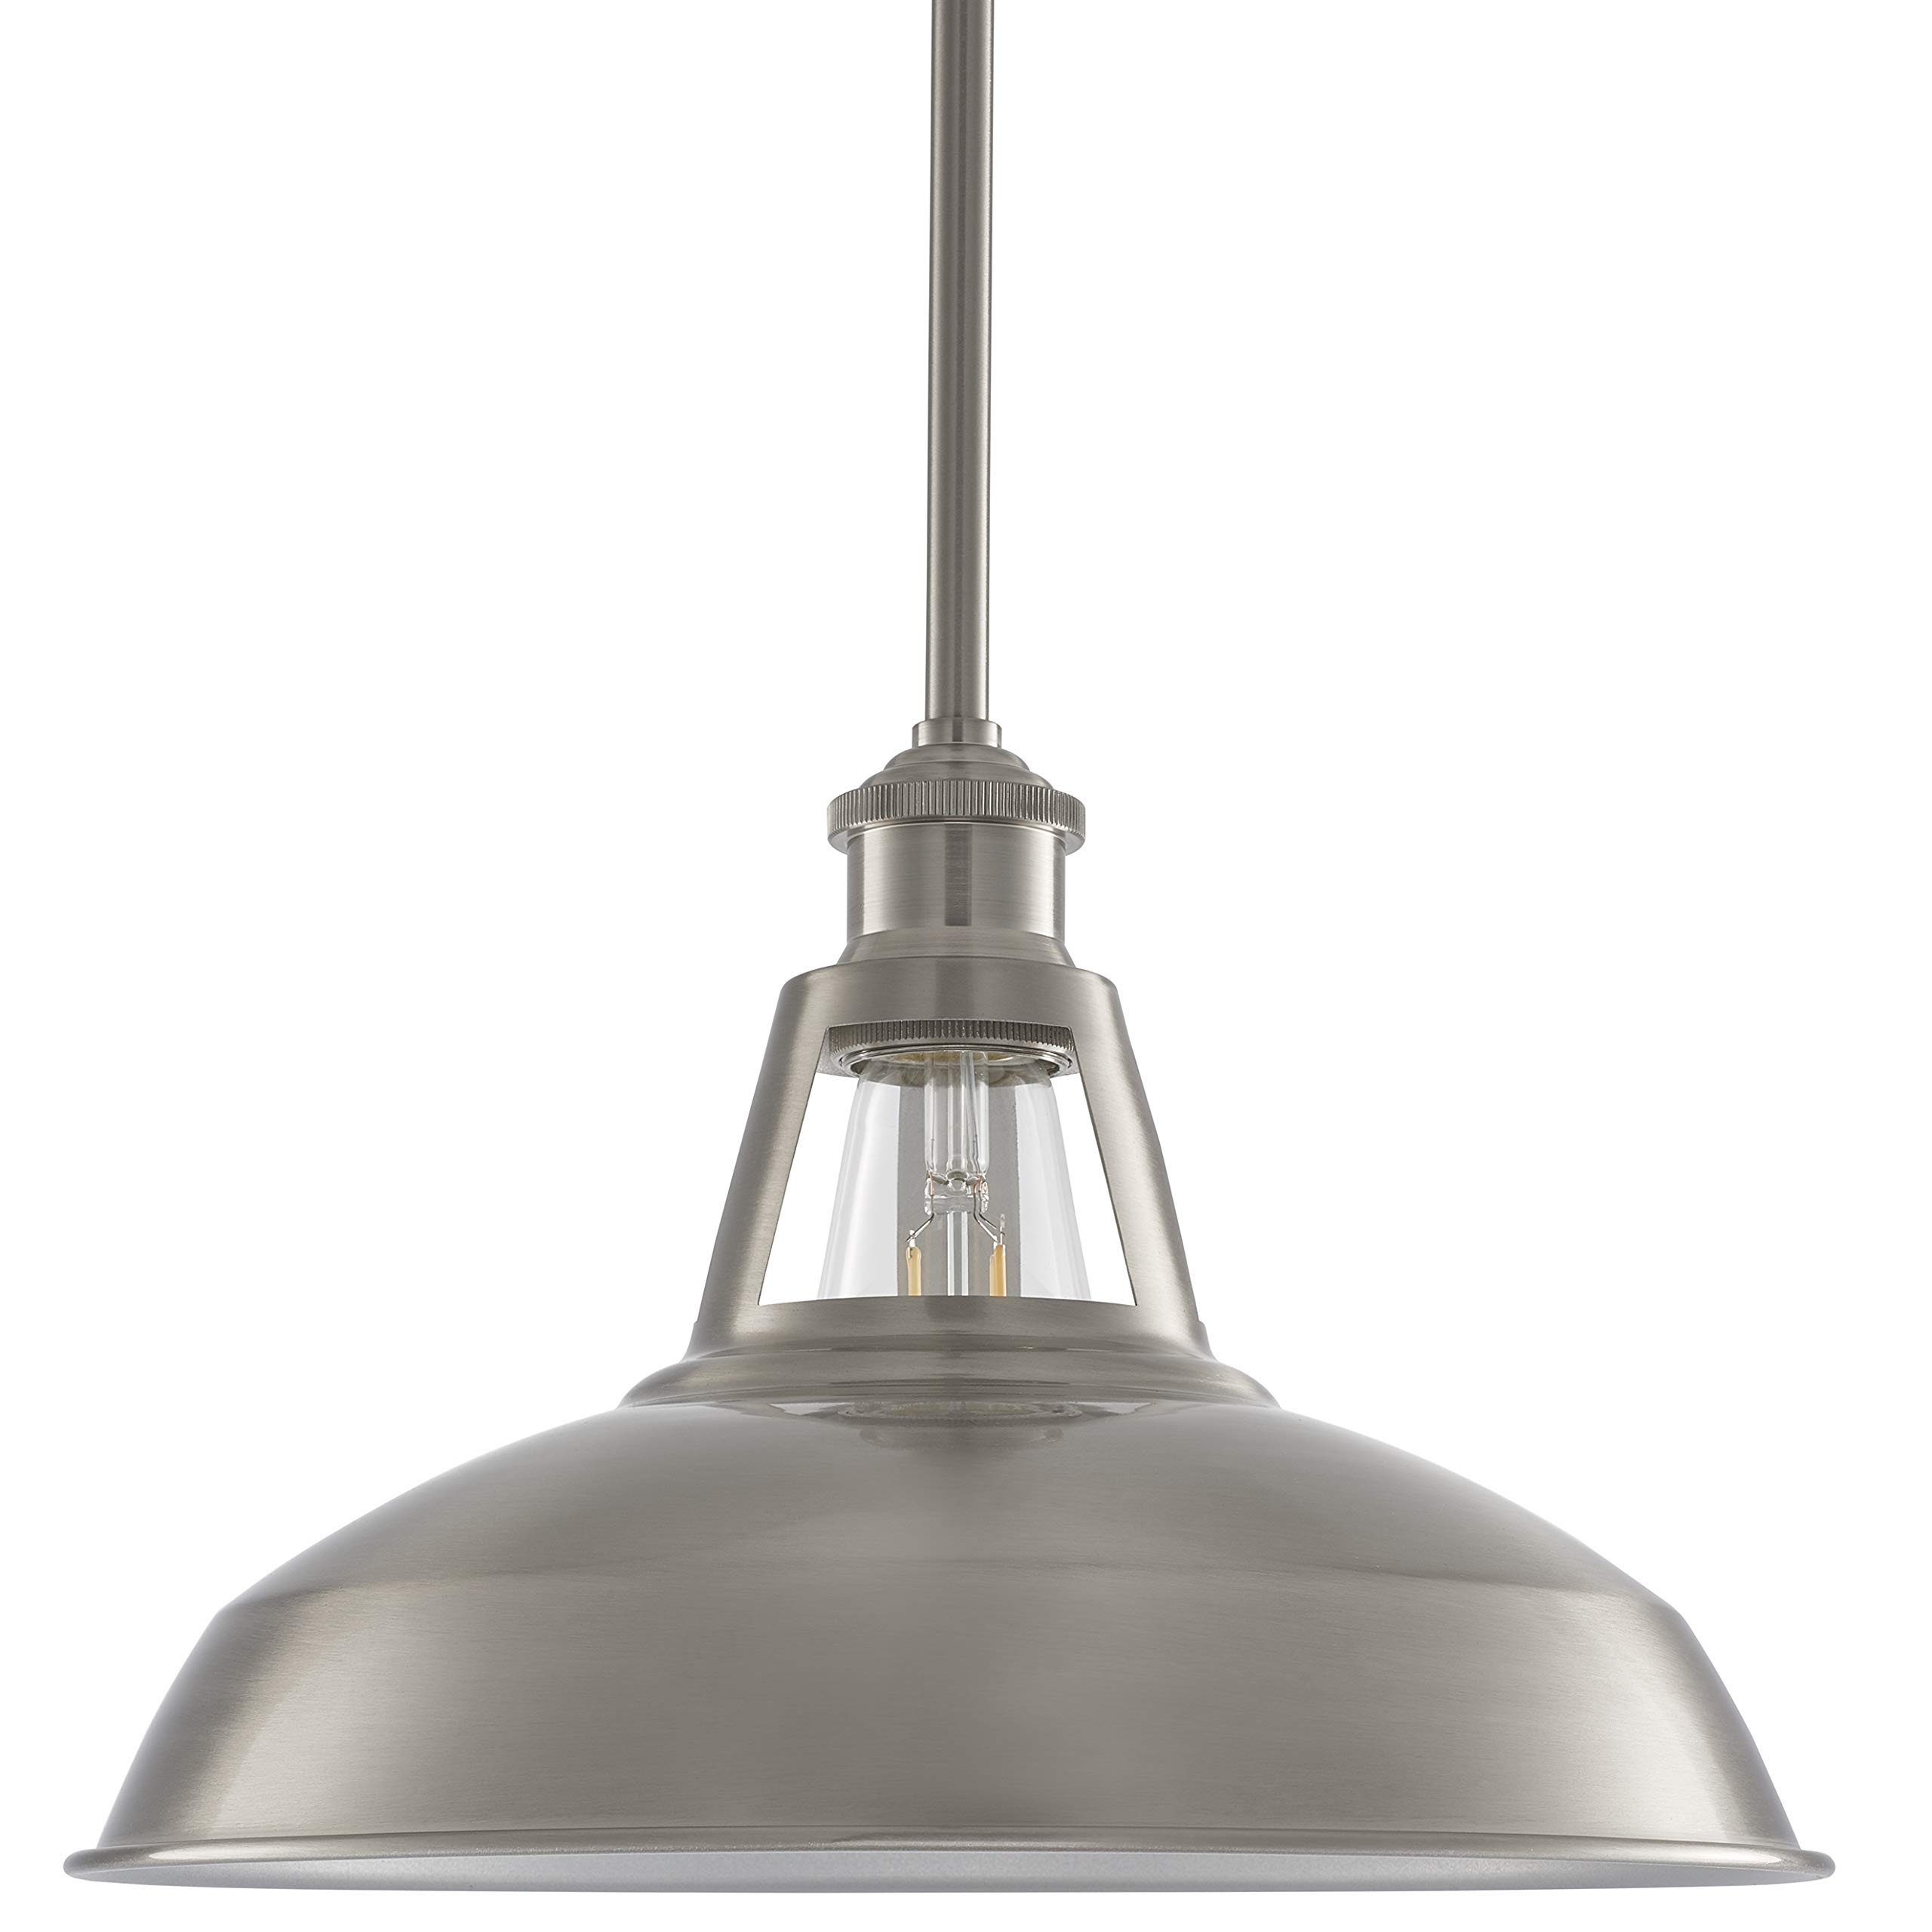 Olivera 12 inch Pendant Light | Brushed Nickel Pendant Lighting for Kitchen Island with LED Bulb LL-P855-1BN